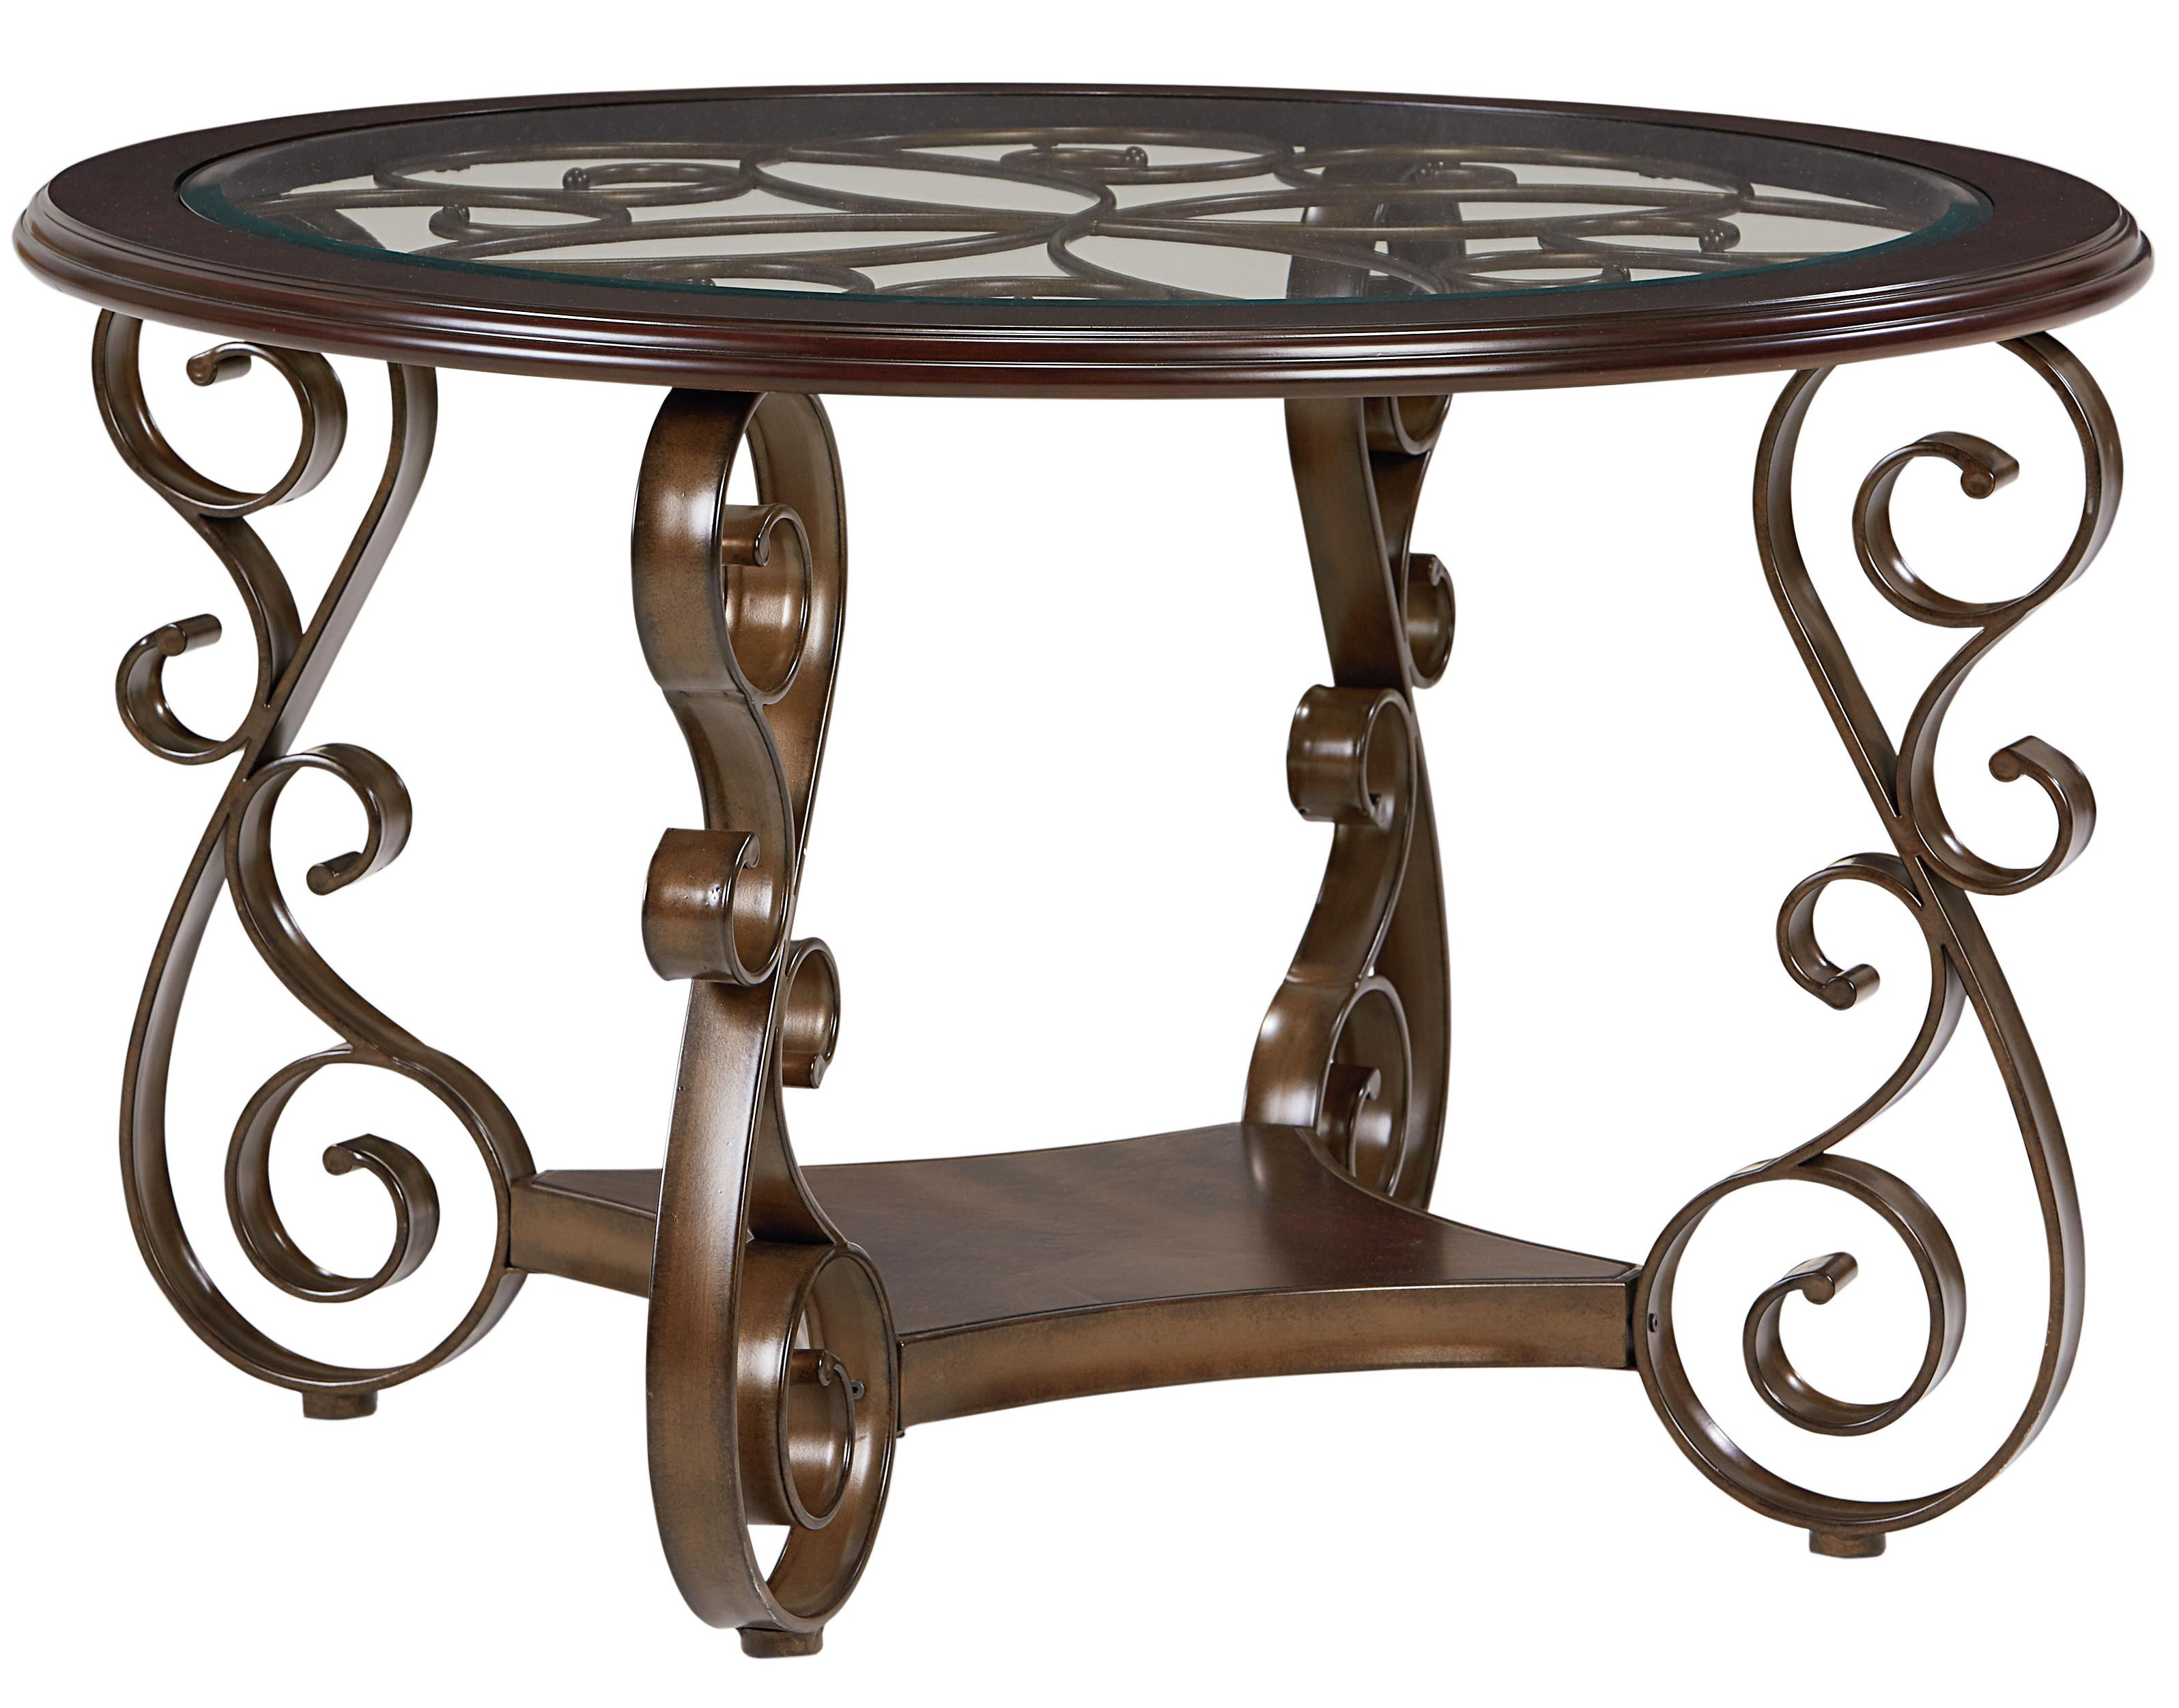 Standard Furniture Bombay Round Dining Table                 - Item Number: 13421